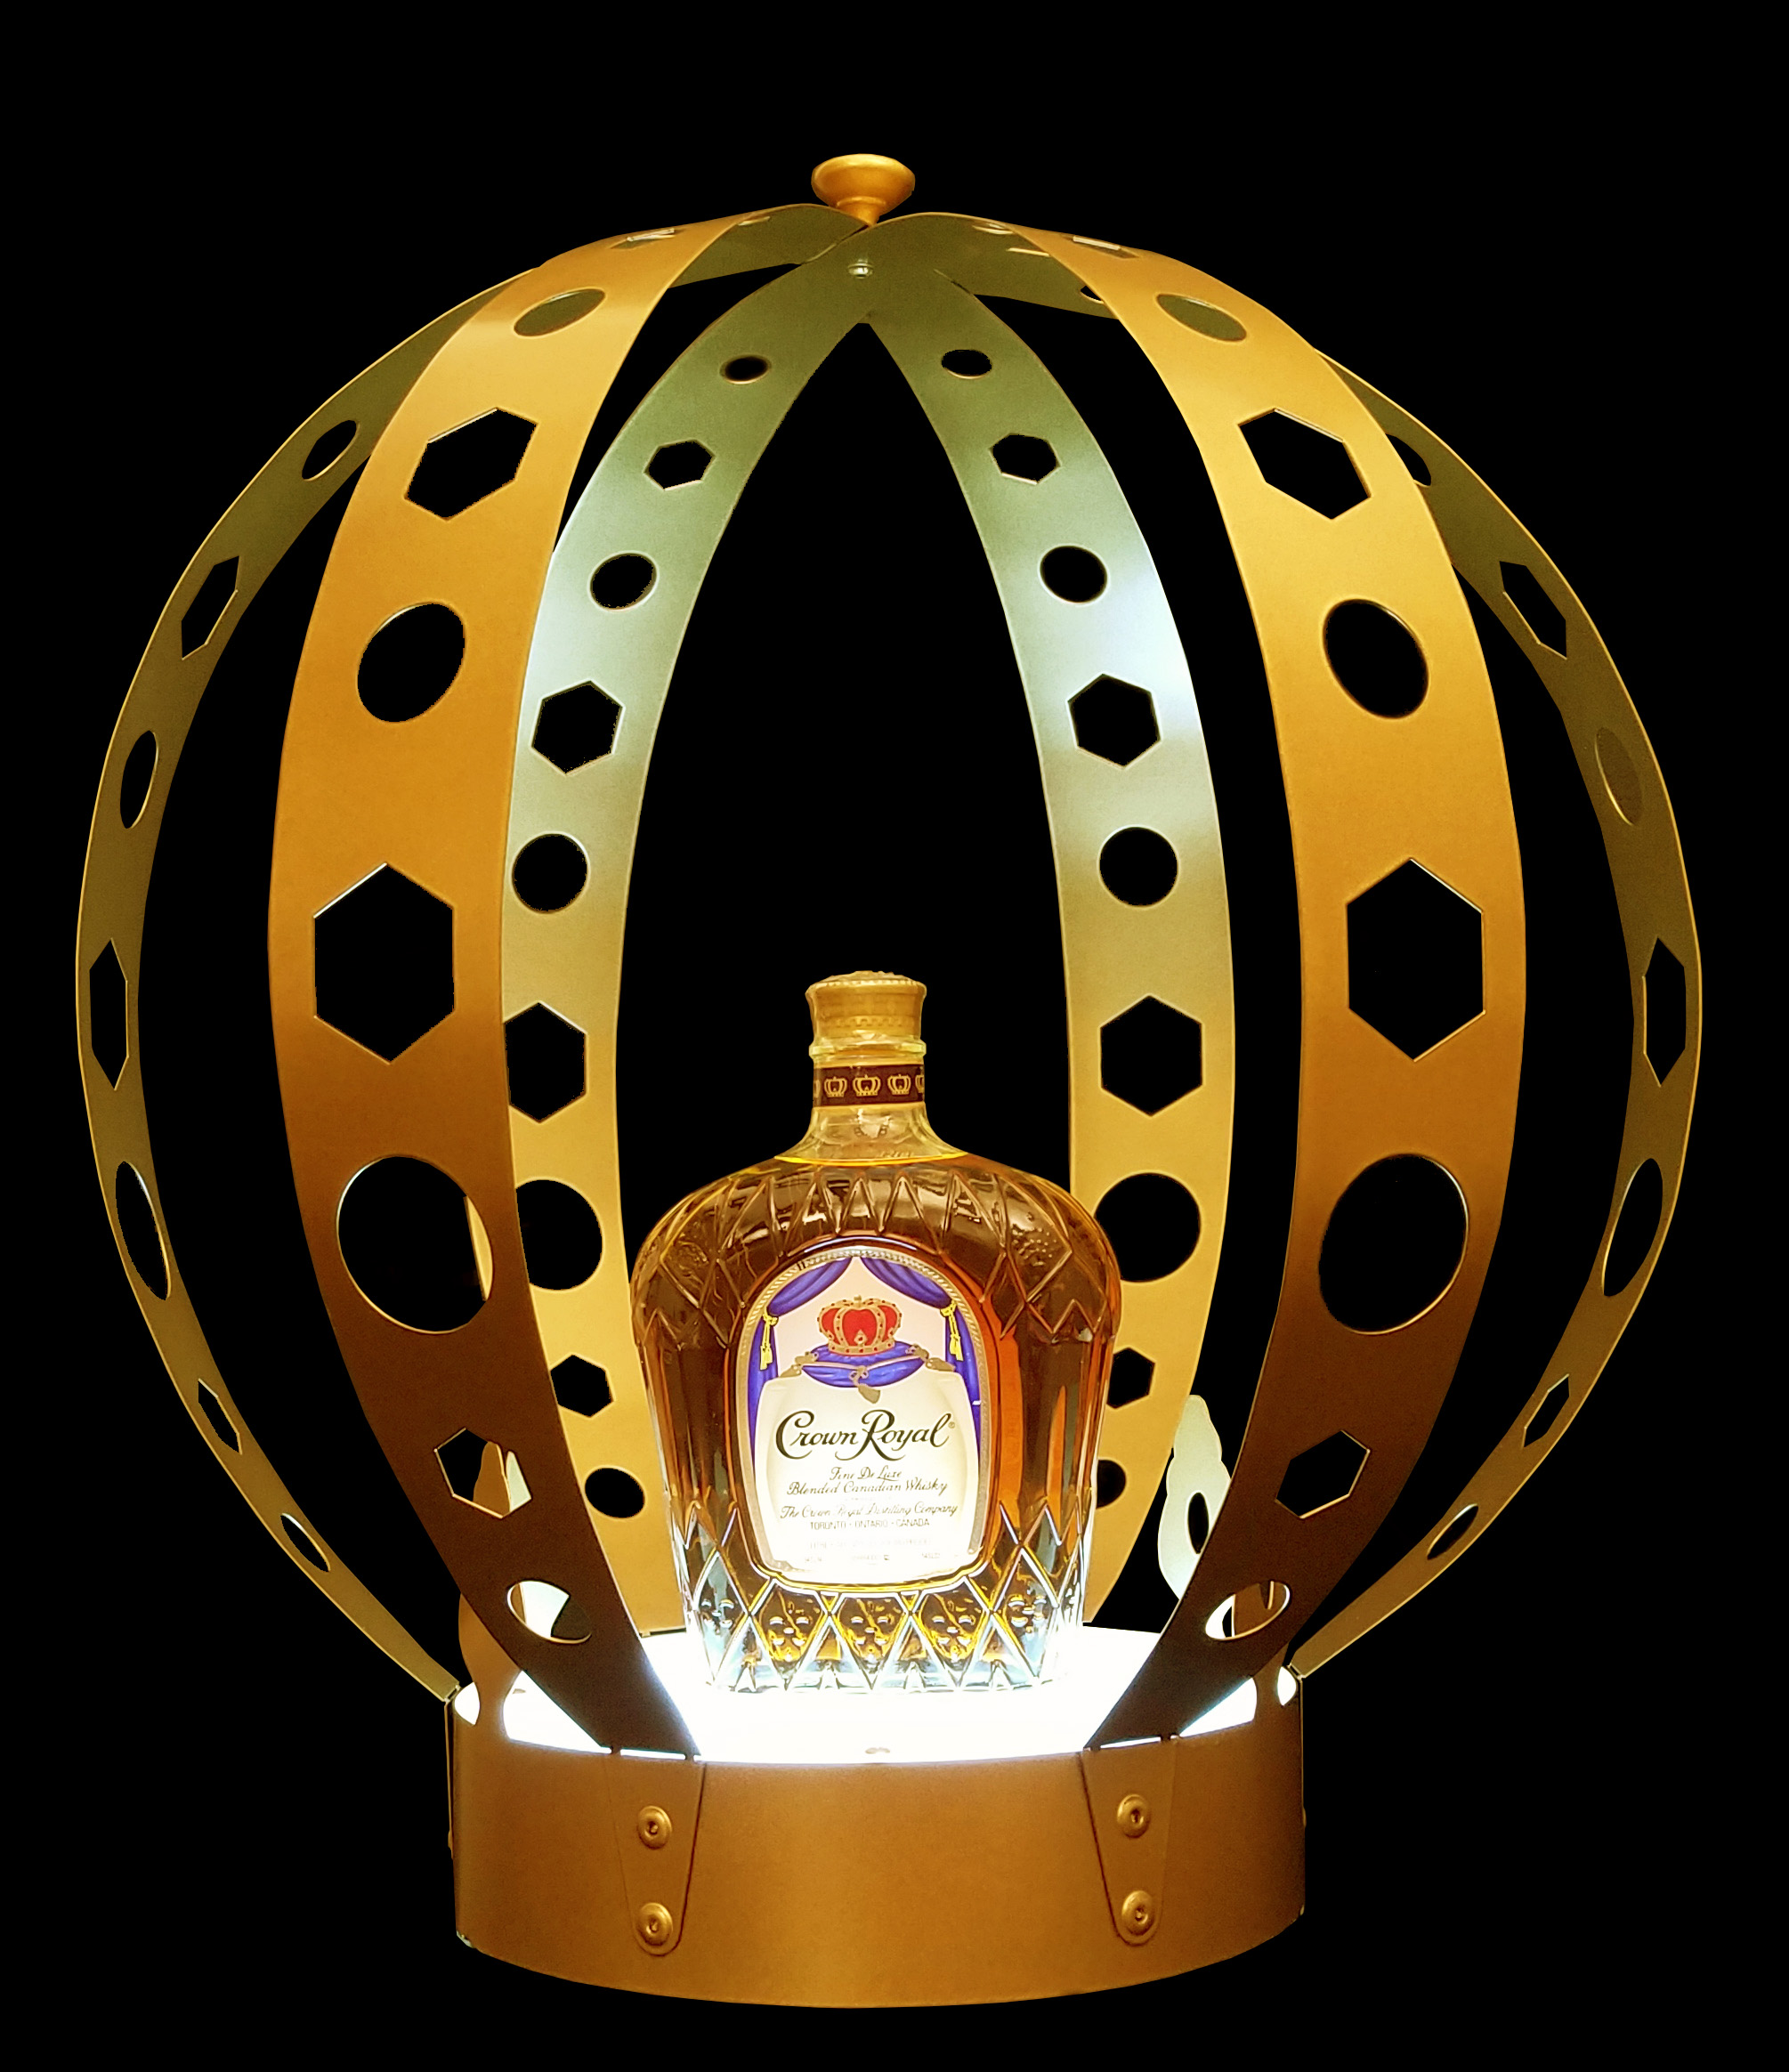 Crown Royal Crown Back Bar Display.jpg